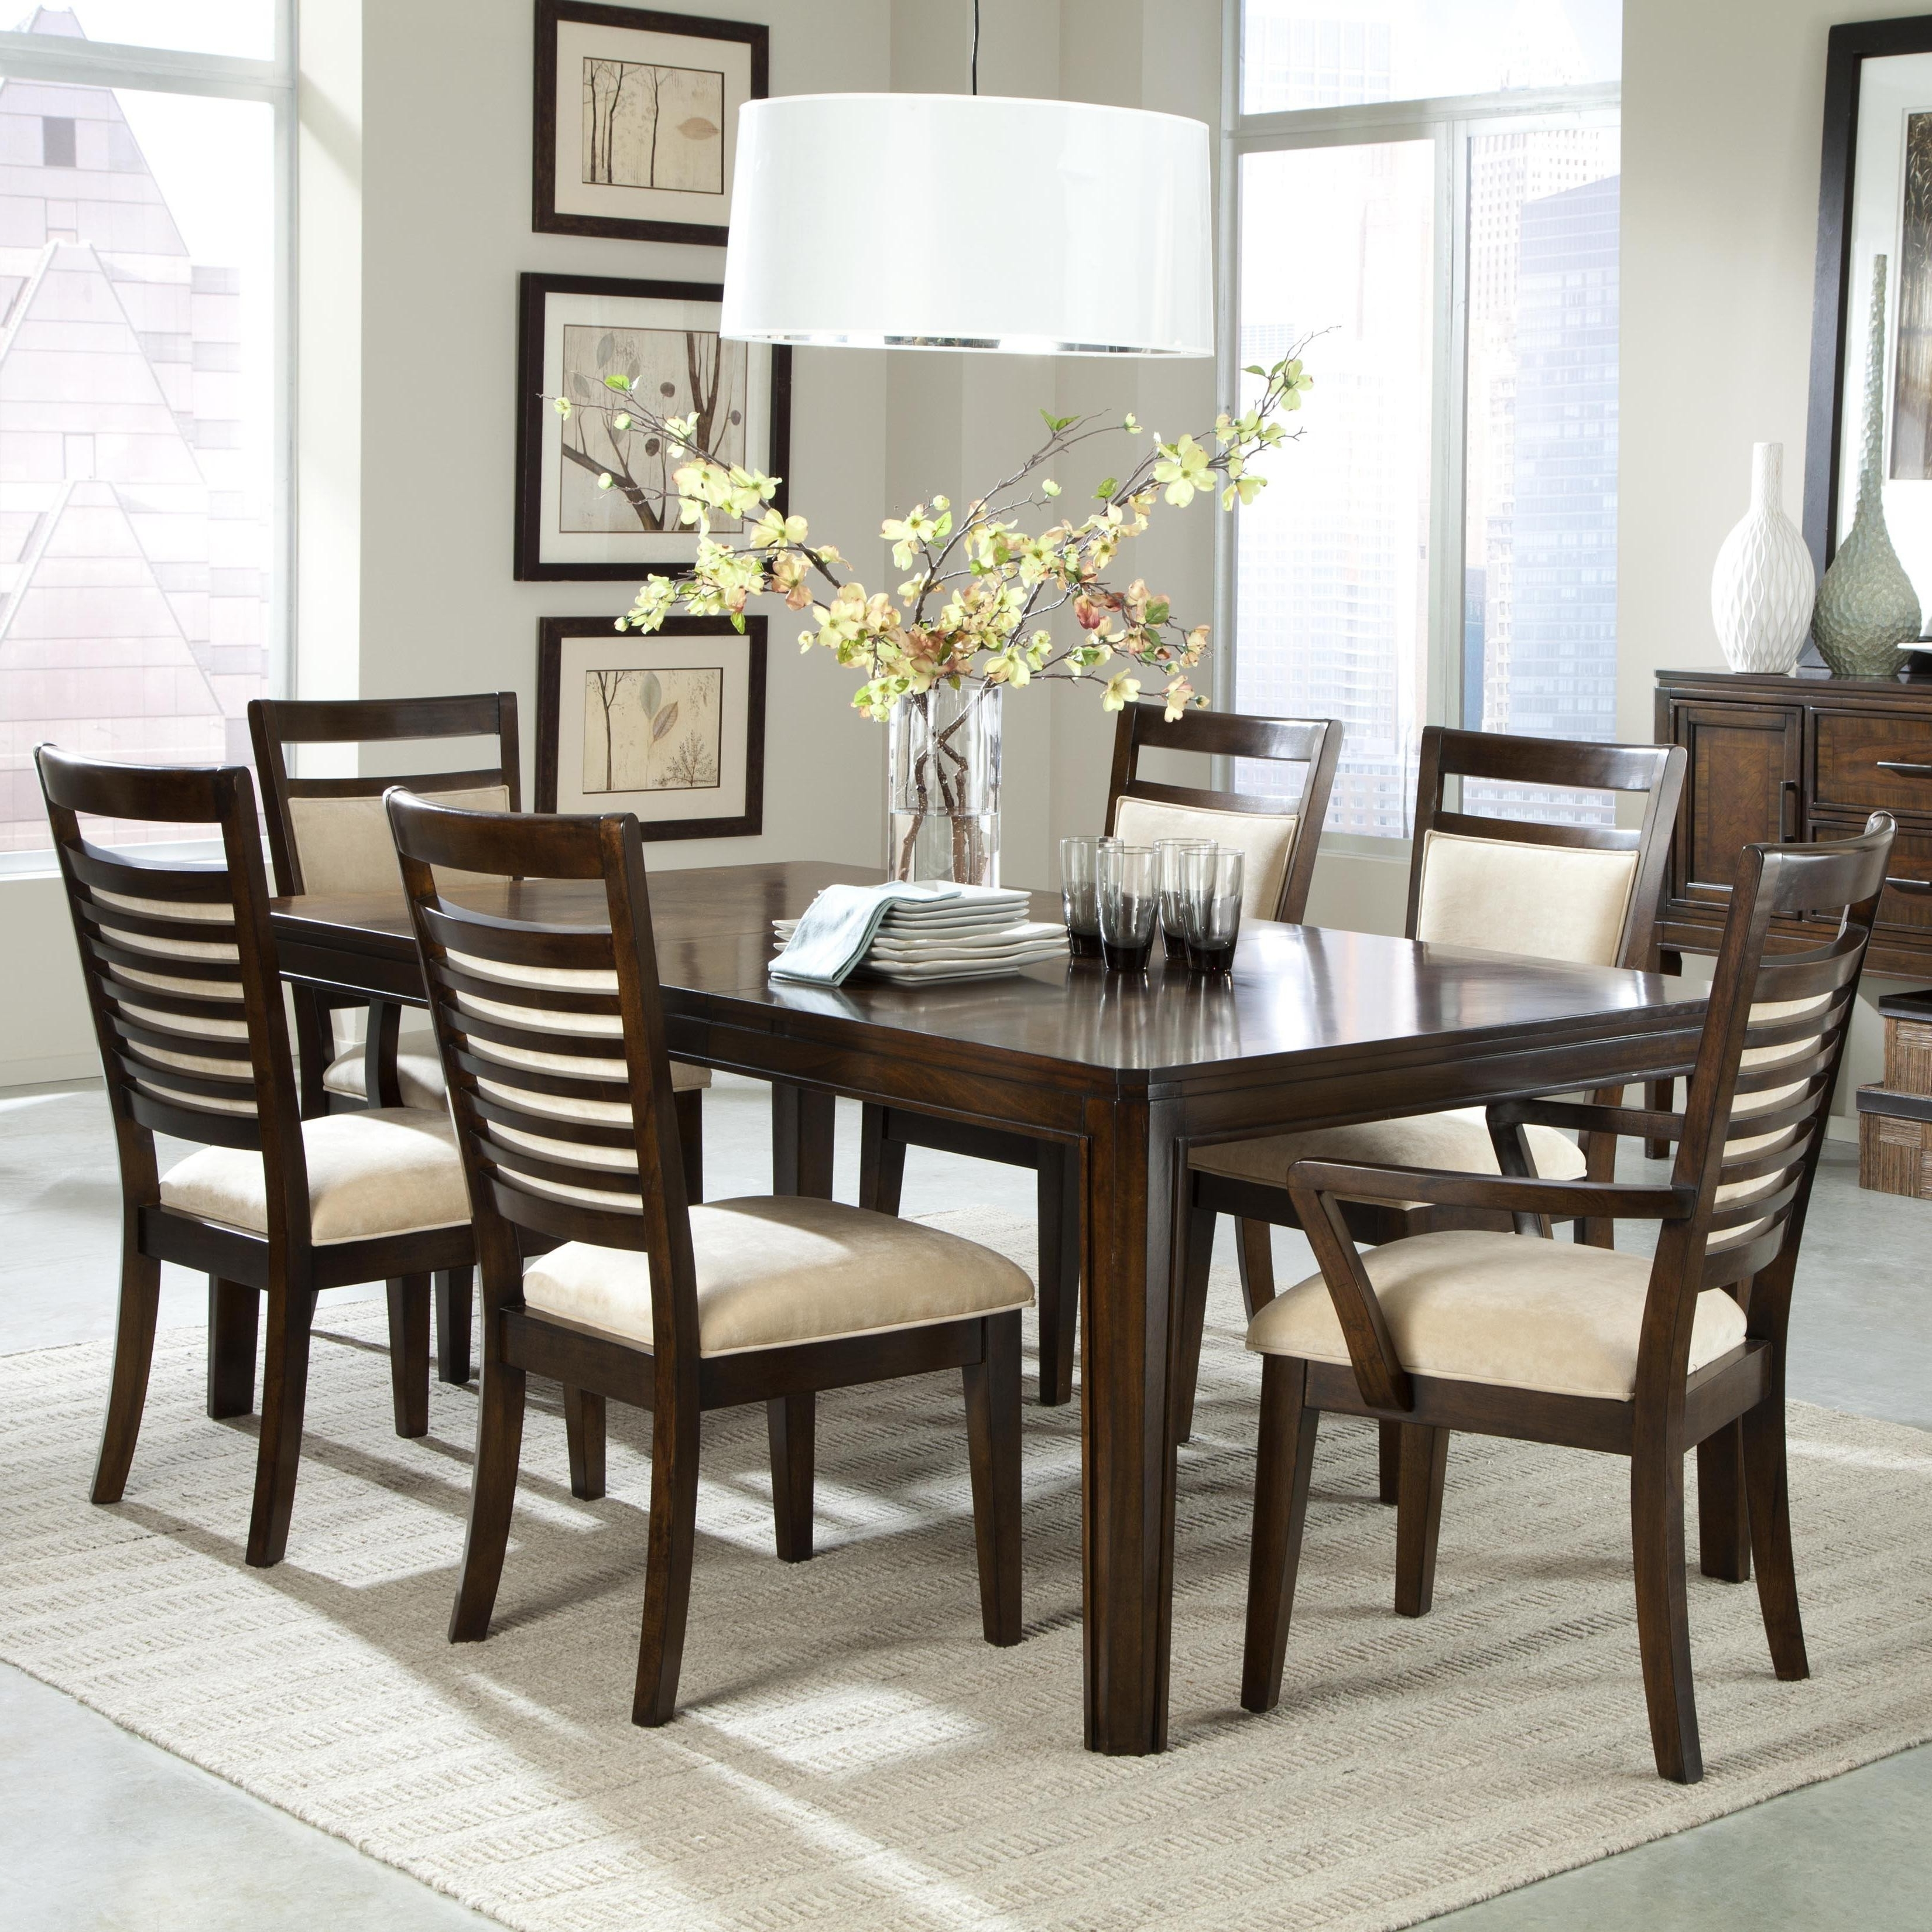 Dining Table Upholstered Chairs Unique The Pemberleigh Round Table inside Trendy Jaxon Grey 7 Piece Rectangle Extension Dining Sets With Wood Chairs